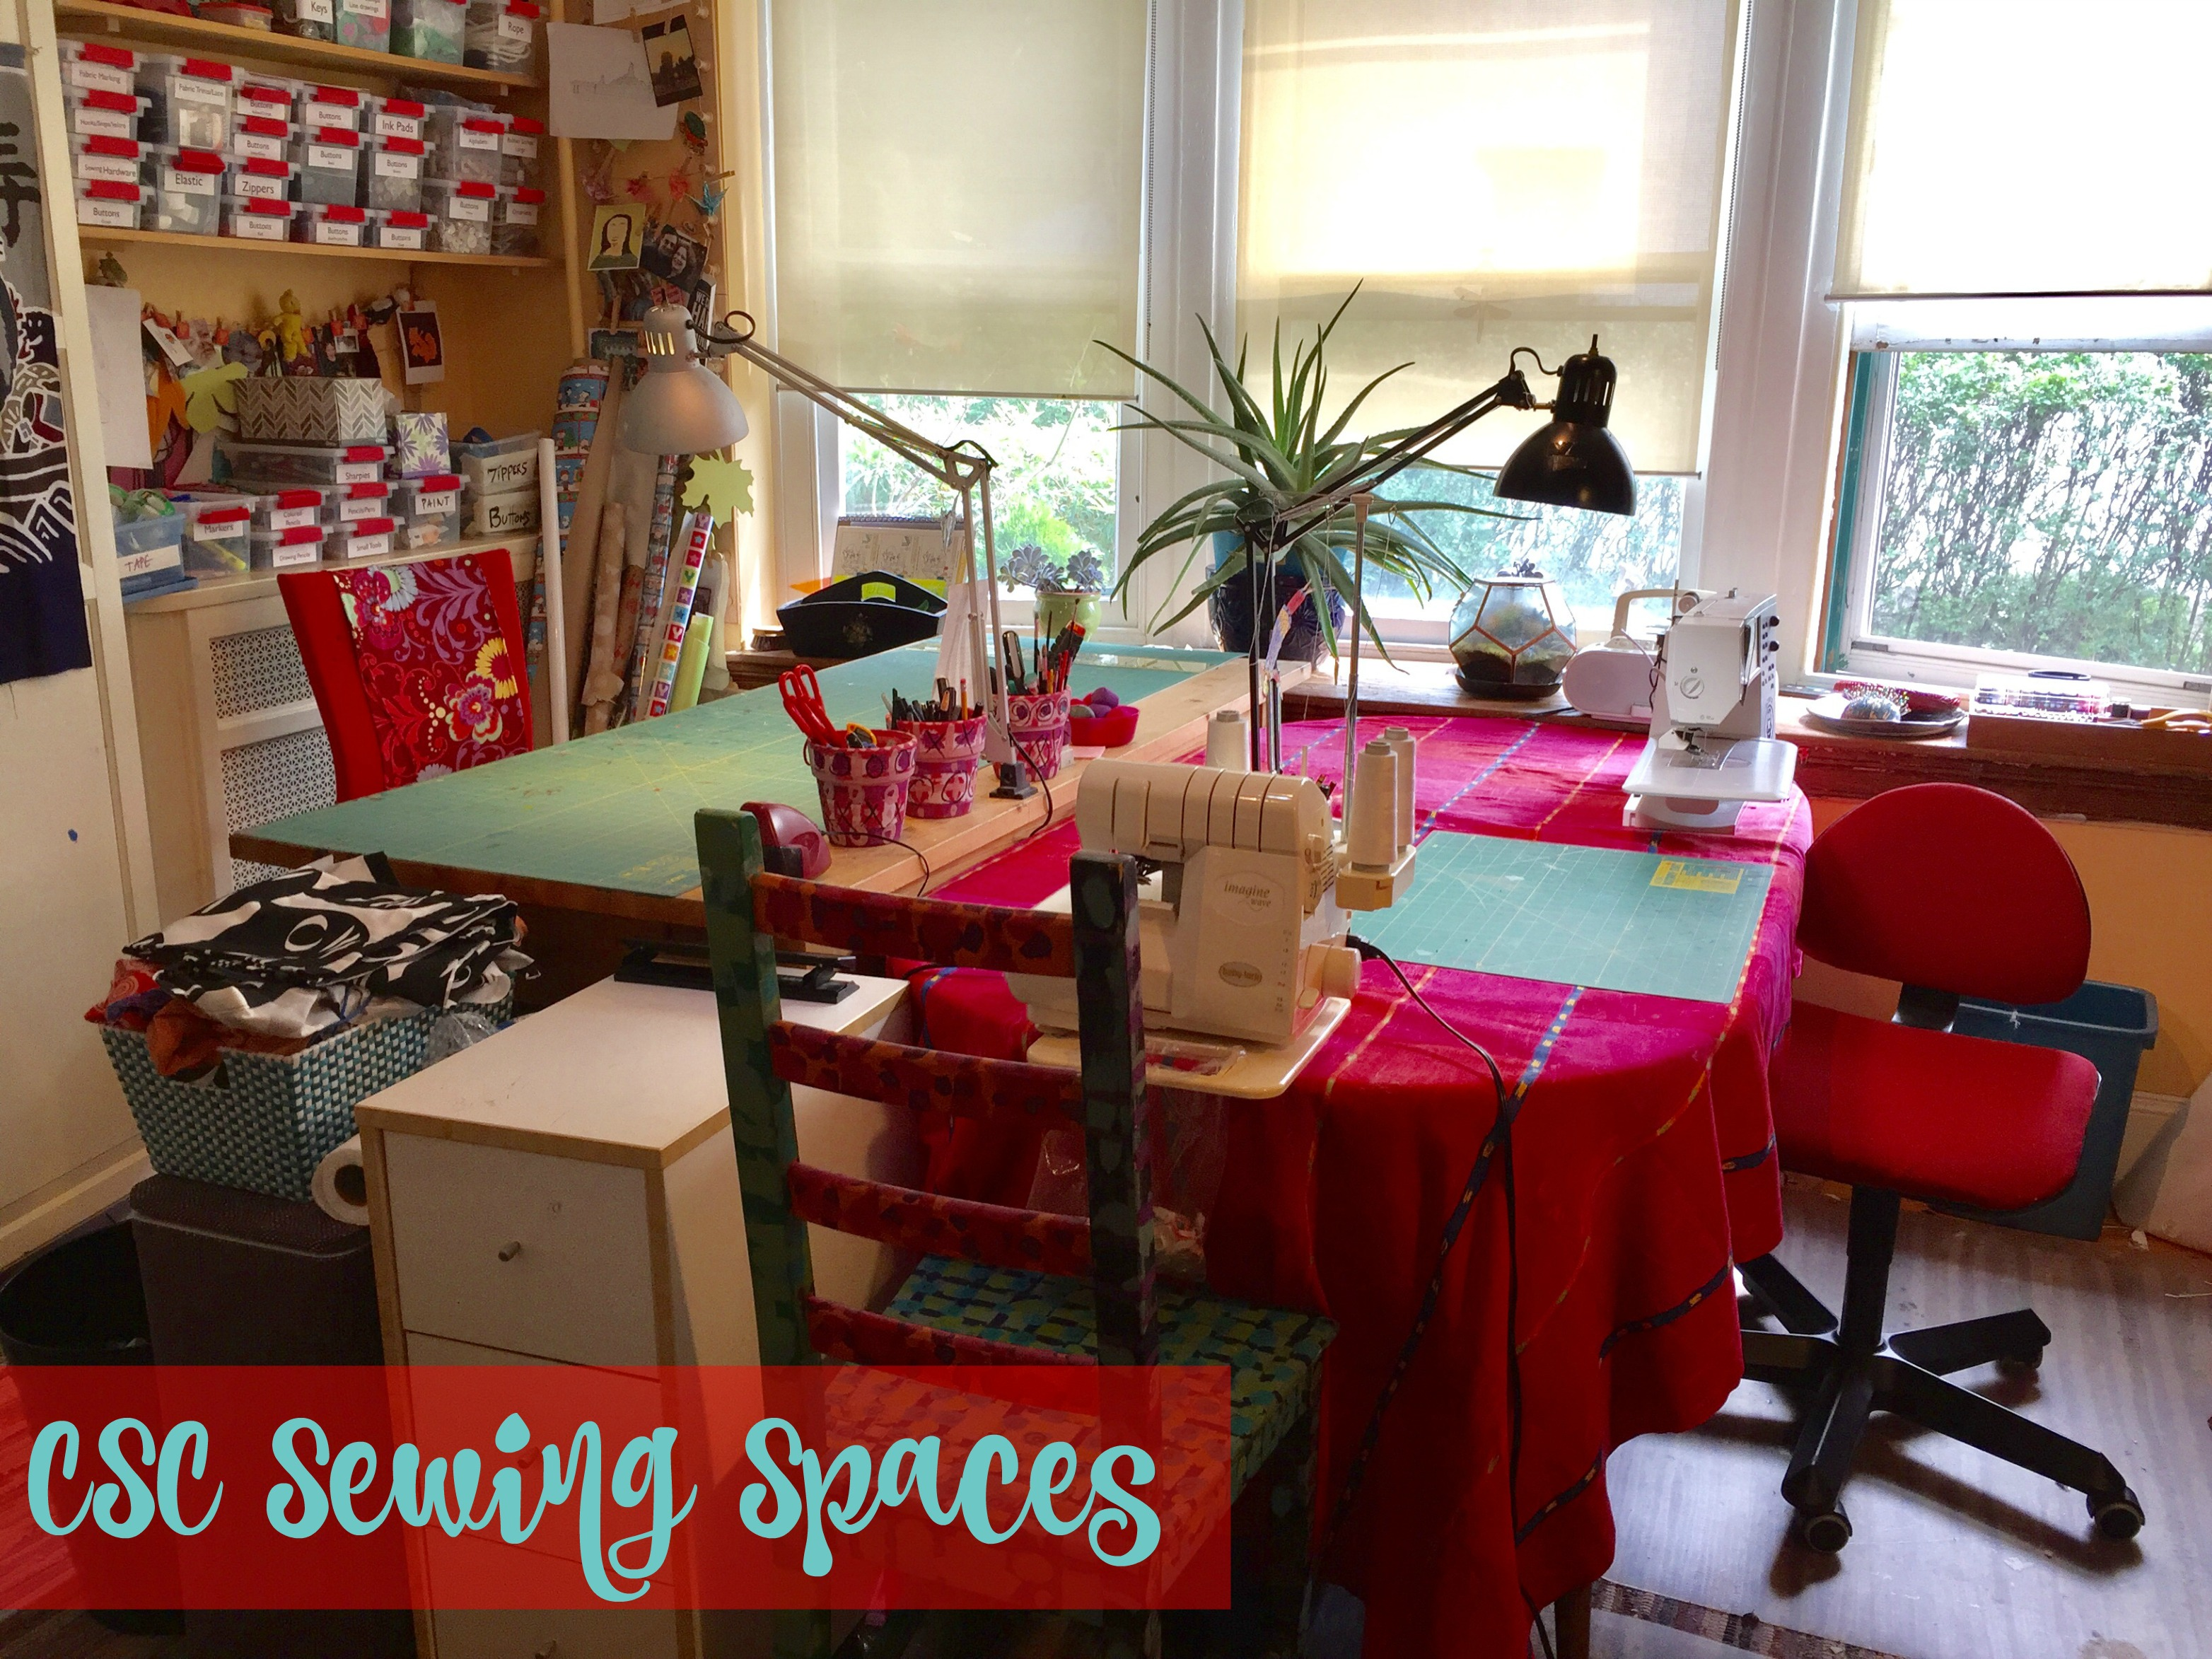 Superb CSC Sewing Spaces: Betsy Part 20